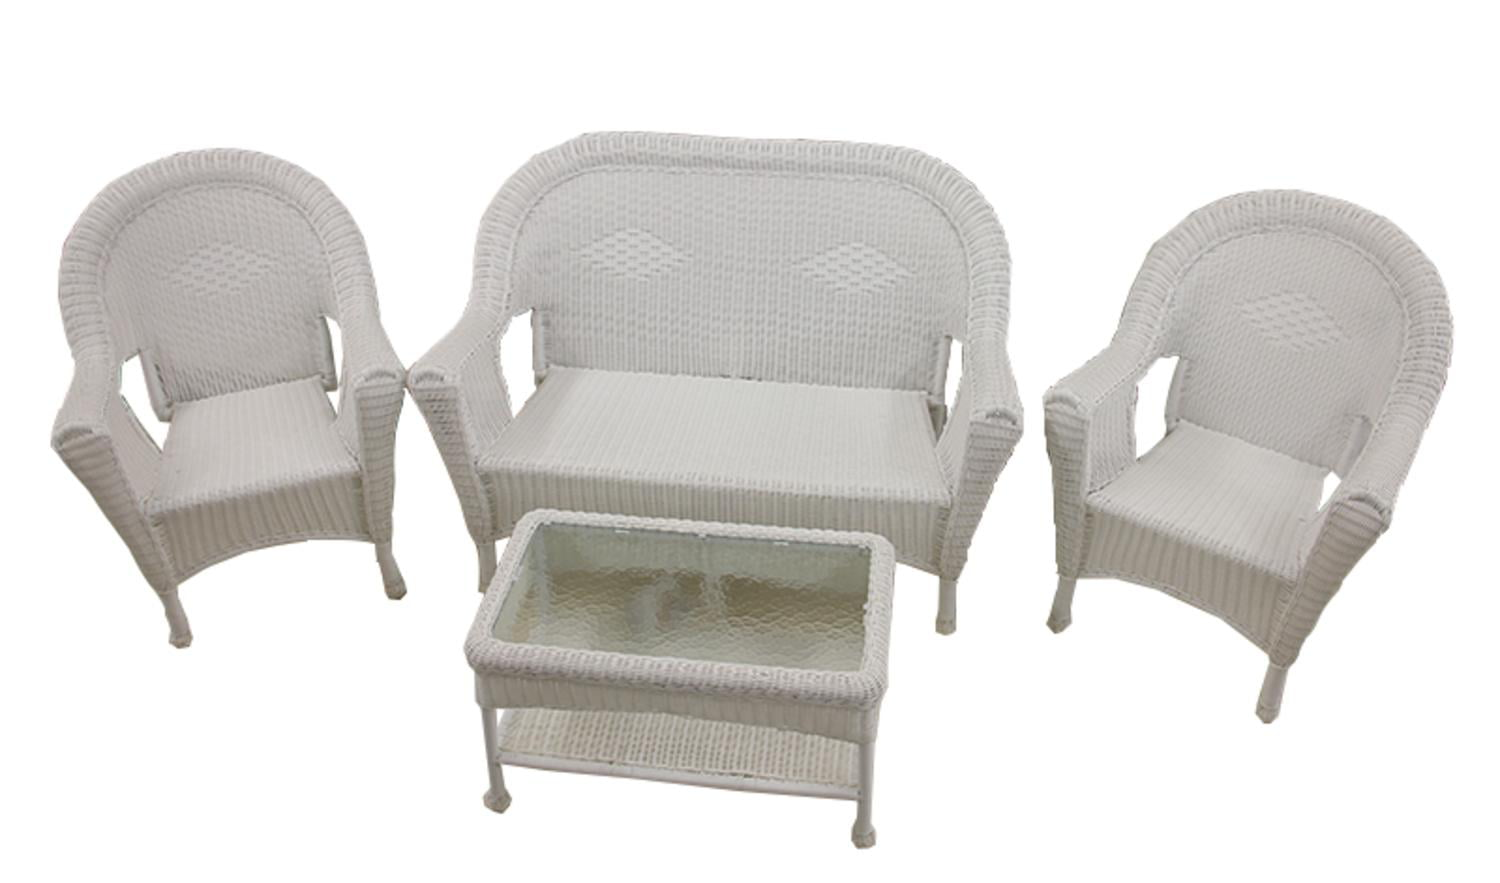 white chairs sets outdoor furniture for small spaces | 4-Piece White Resin Wicker Patio Furniture Set- 2 Chairs ...